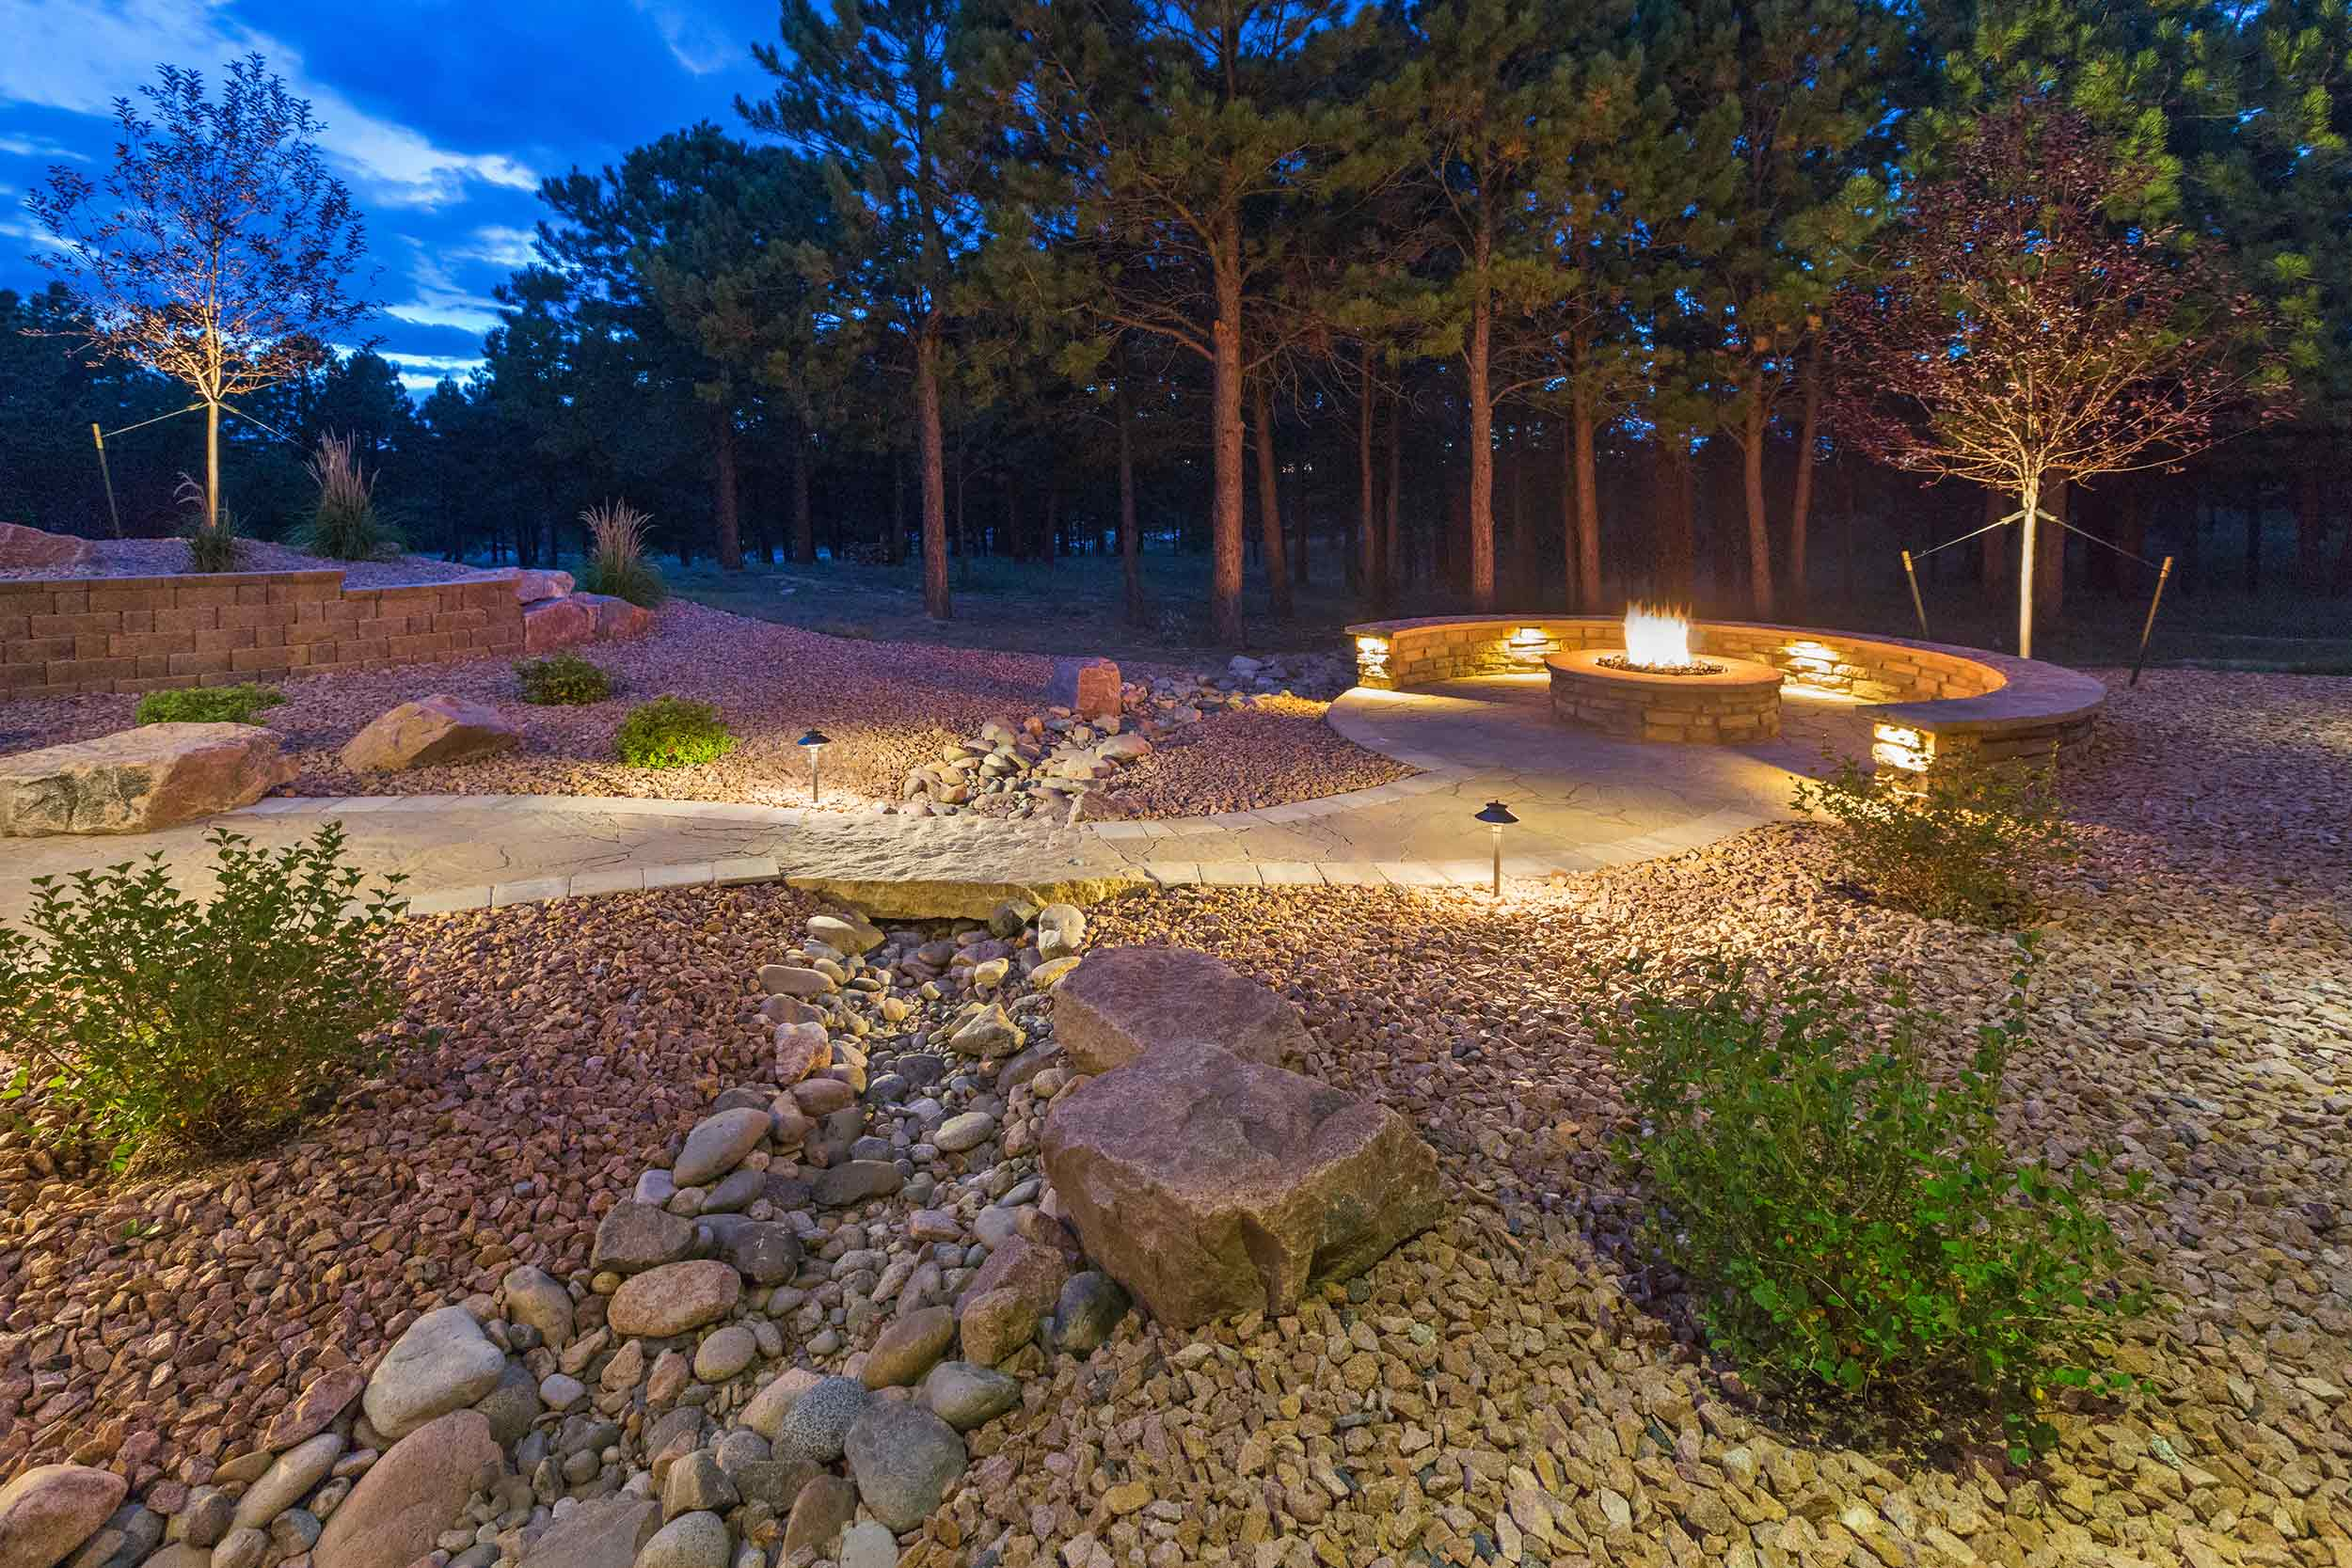 Landscaping and Hardscaping - Firepit with bench seating.